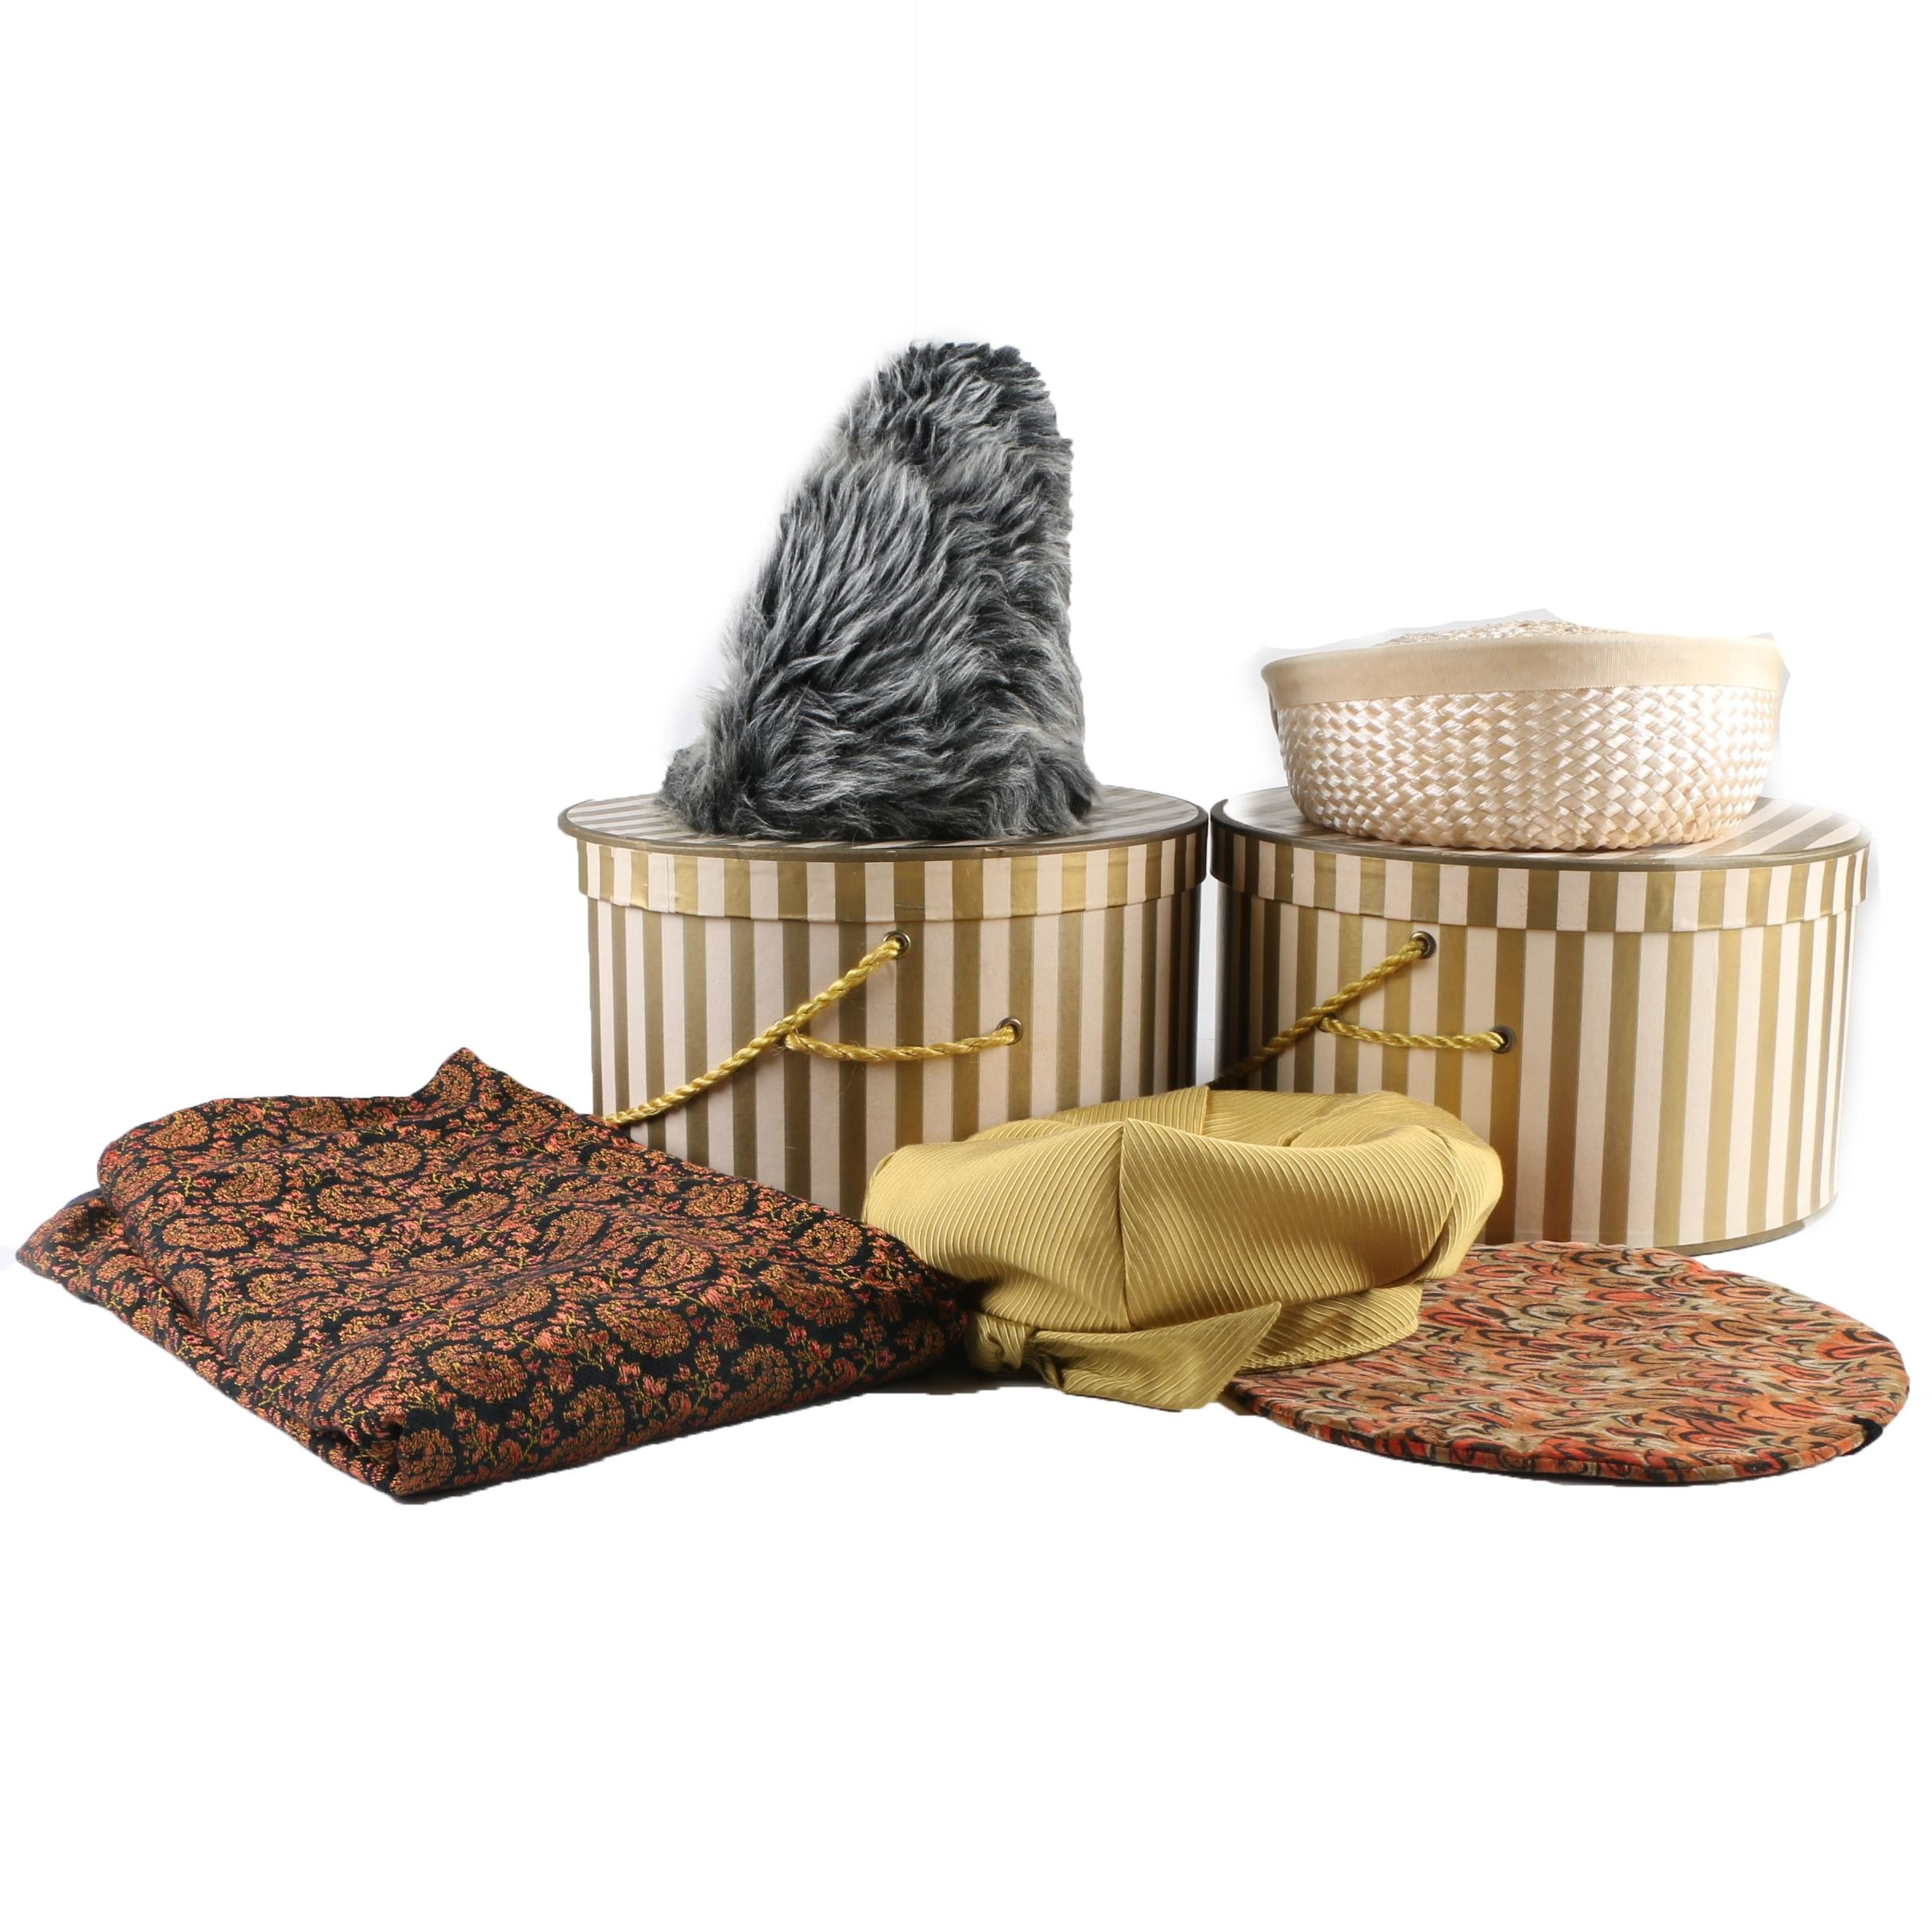 Women's Vintage Hats, Hat Boxes and Shawl Including Mr. Paul